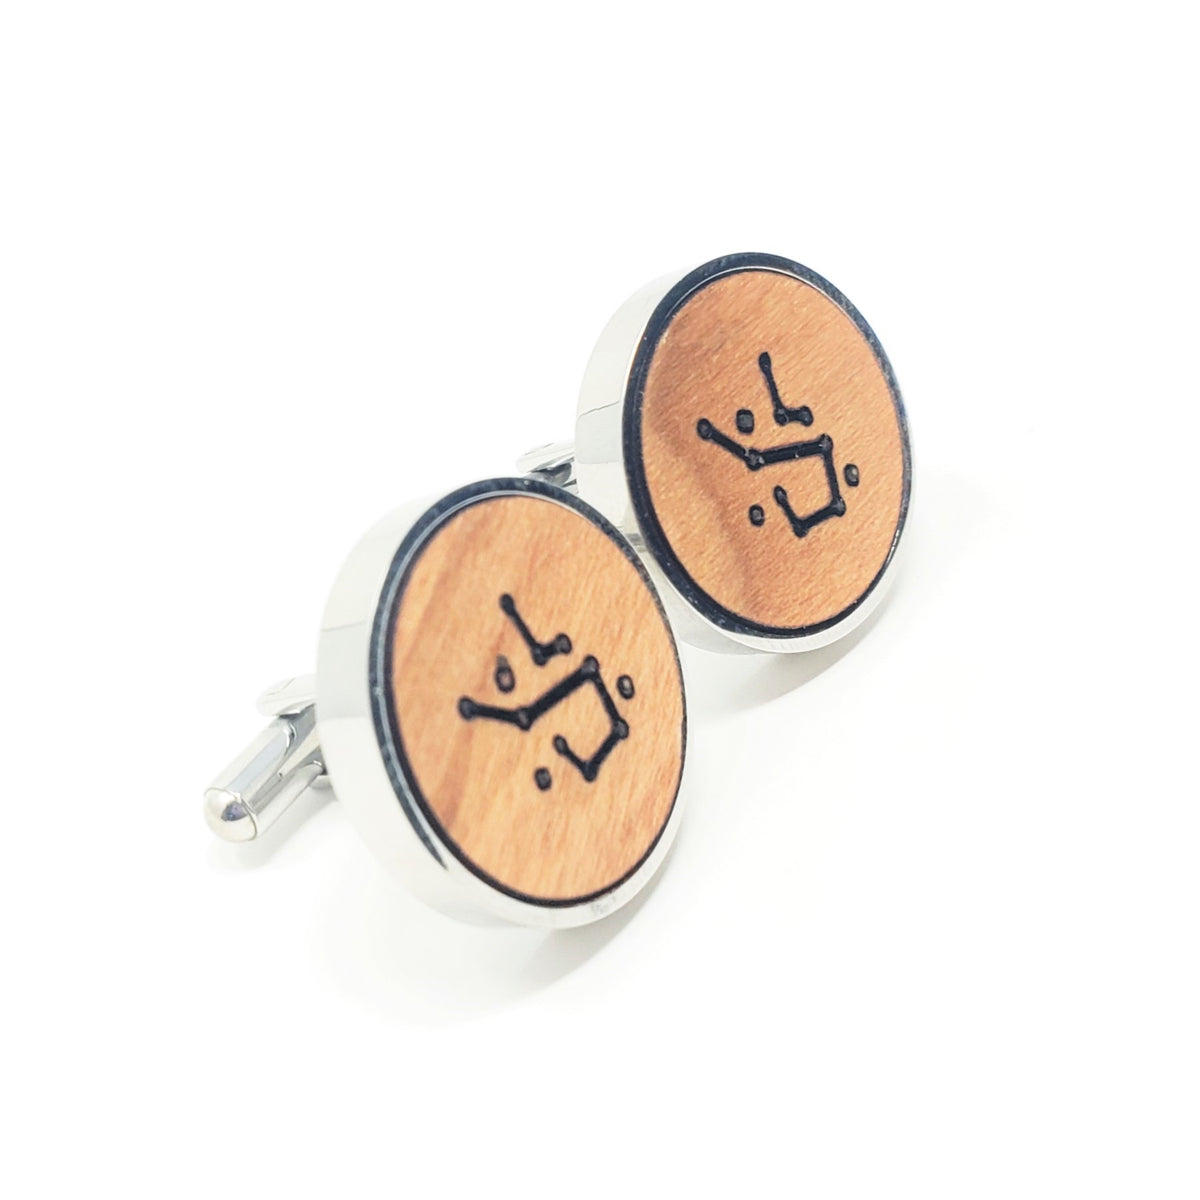 Constellation Stainless and Wood Cufflinks